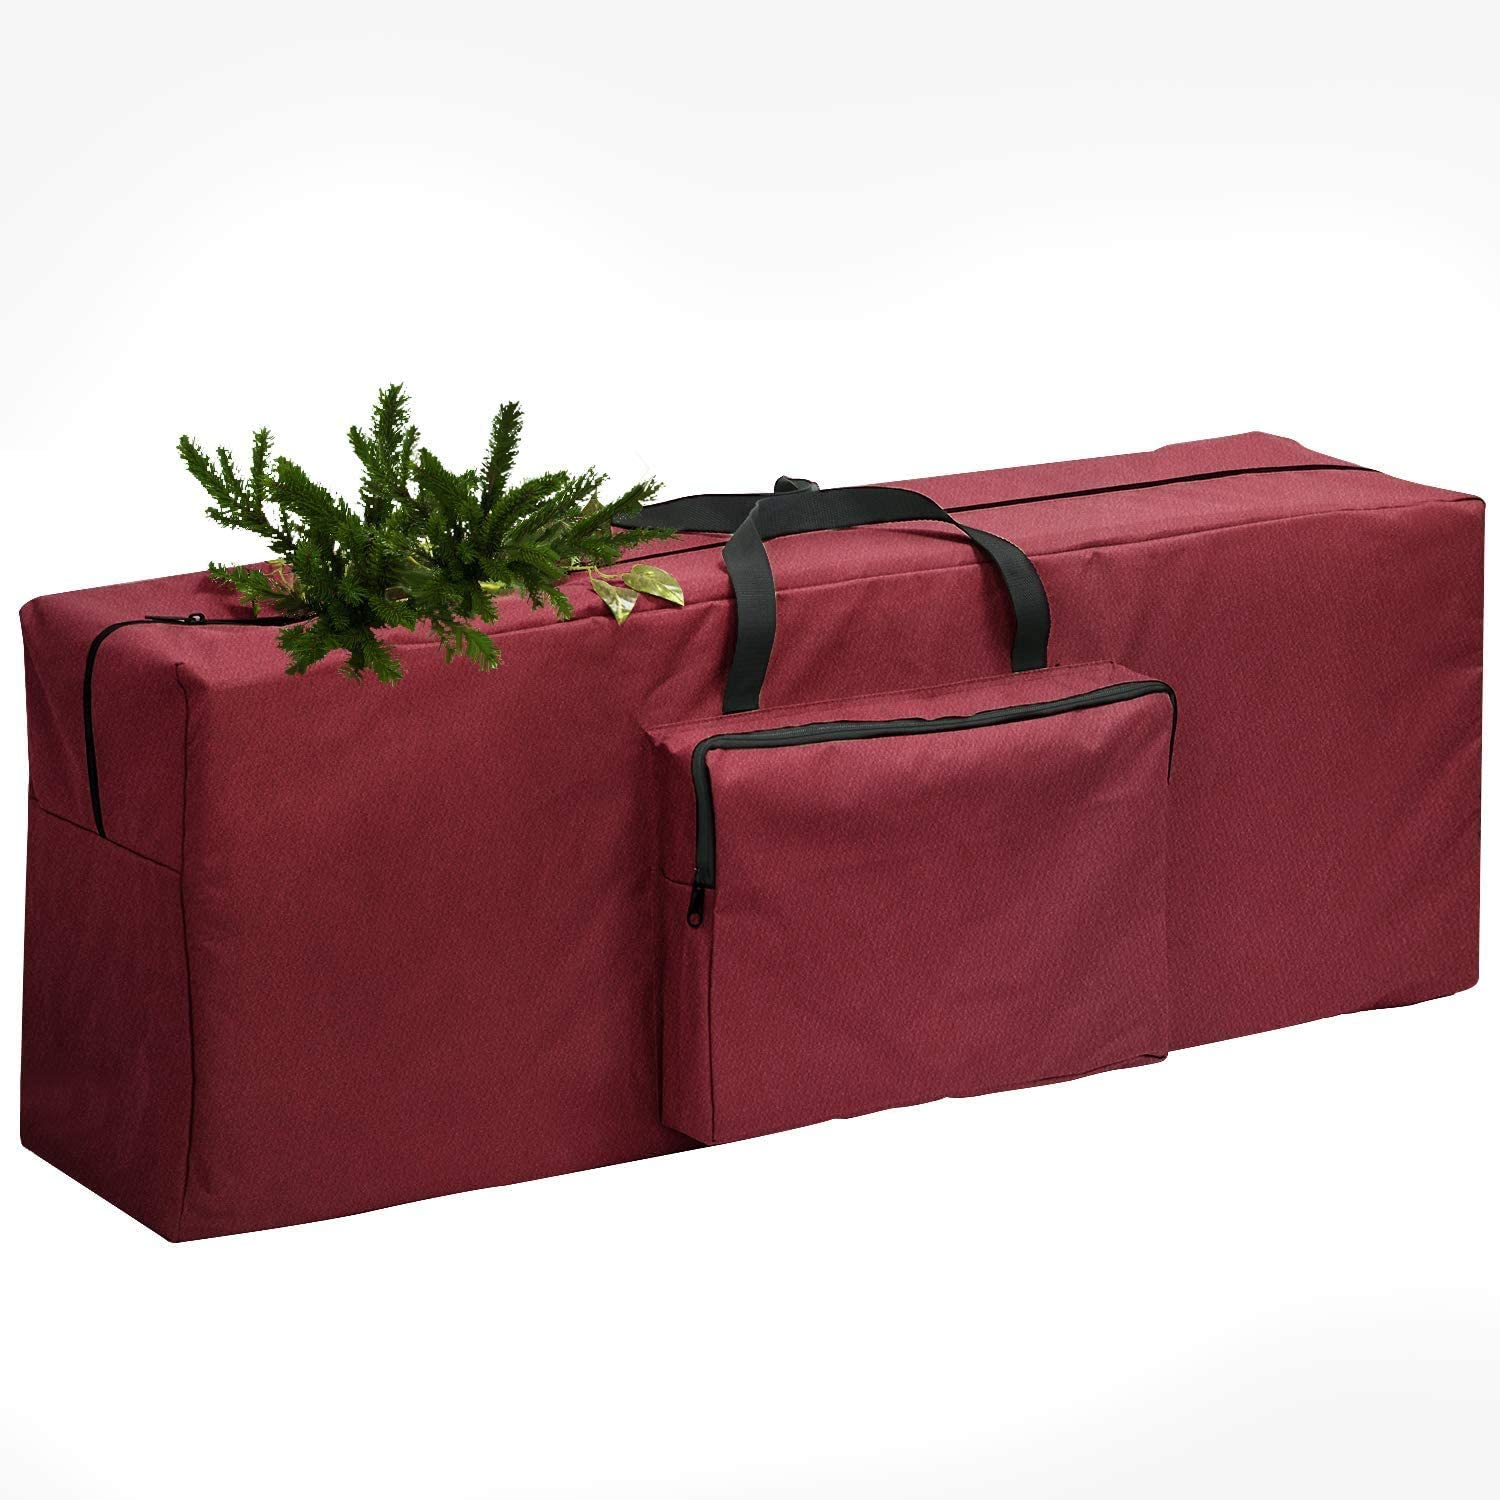 wiland Christmas Tree Storage Bag,Christmas Tree Bag with External Pockets for Wreath Storage Container Artificial Trees Christmas Holiday Decor,Durable Xmas Bag-Tear Proof Premium 600D Oxford